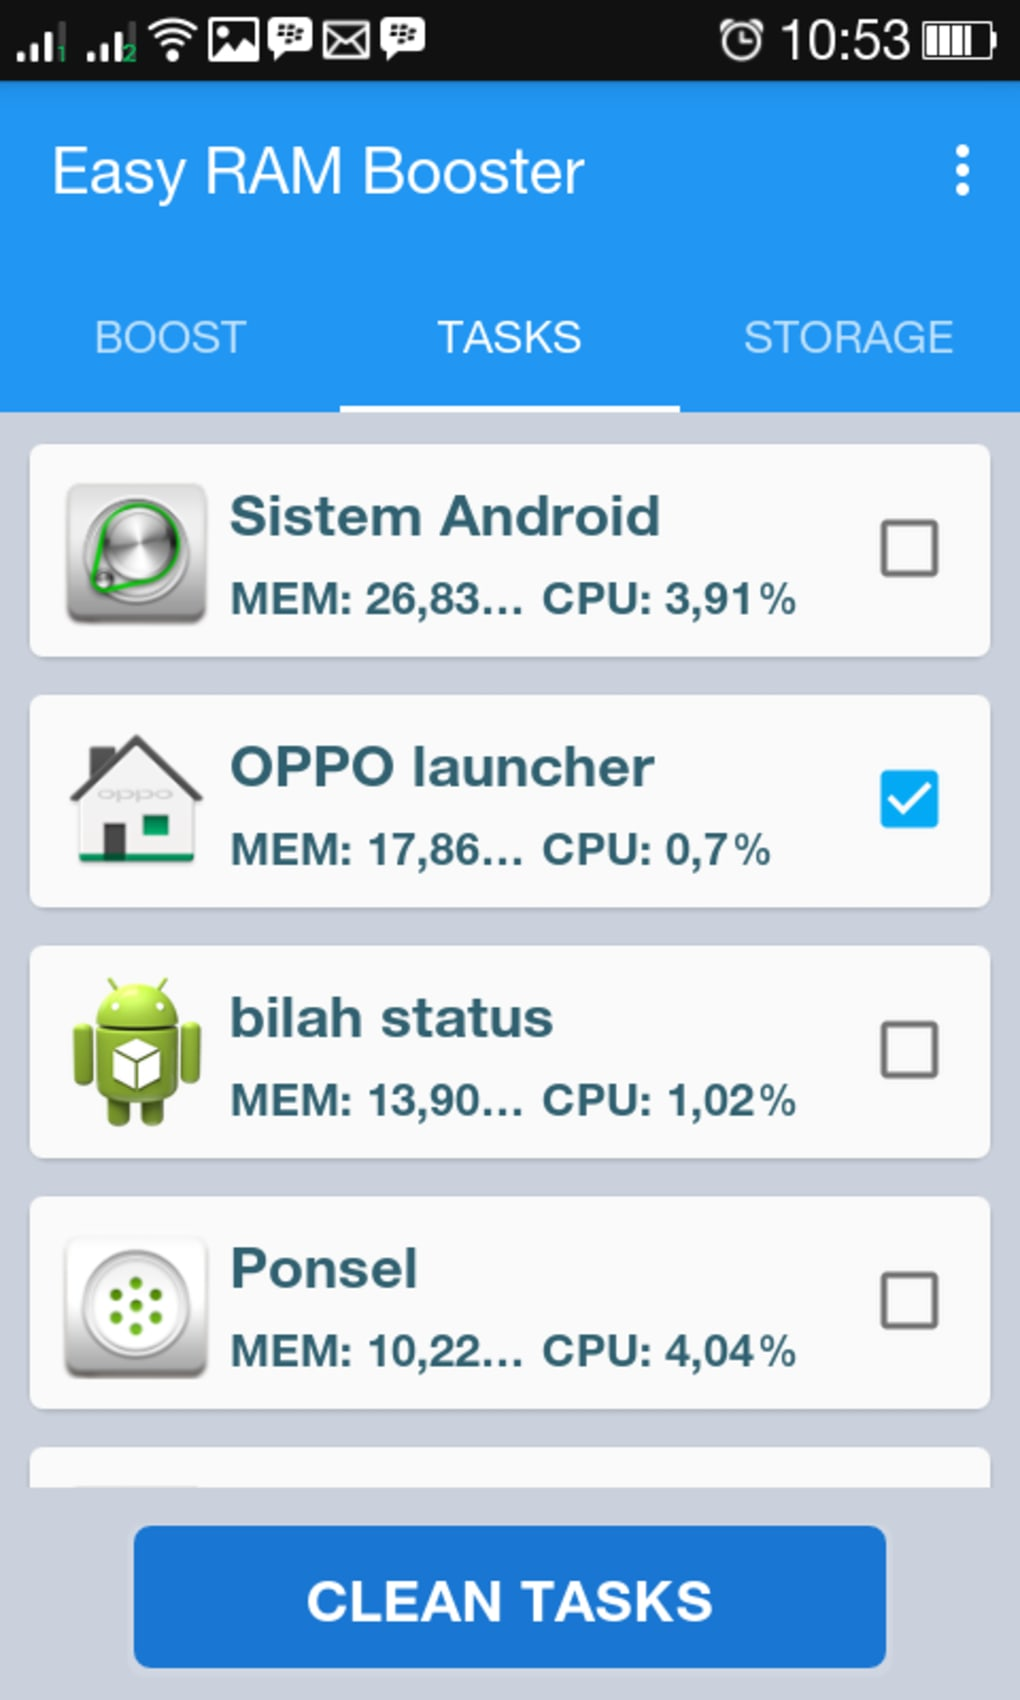 RAM Speed Booster Memory Cleaner for Android - Download